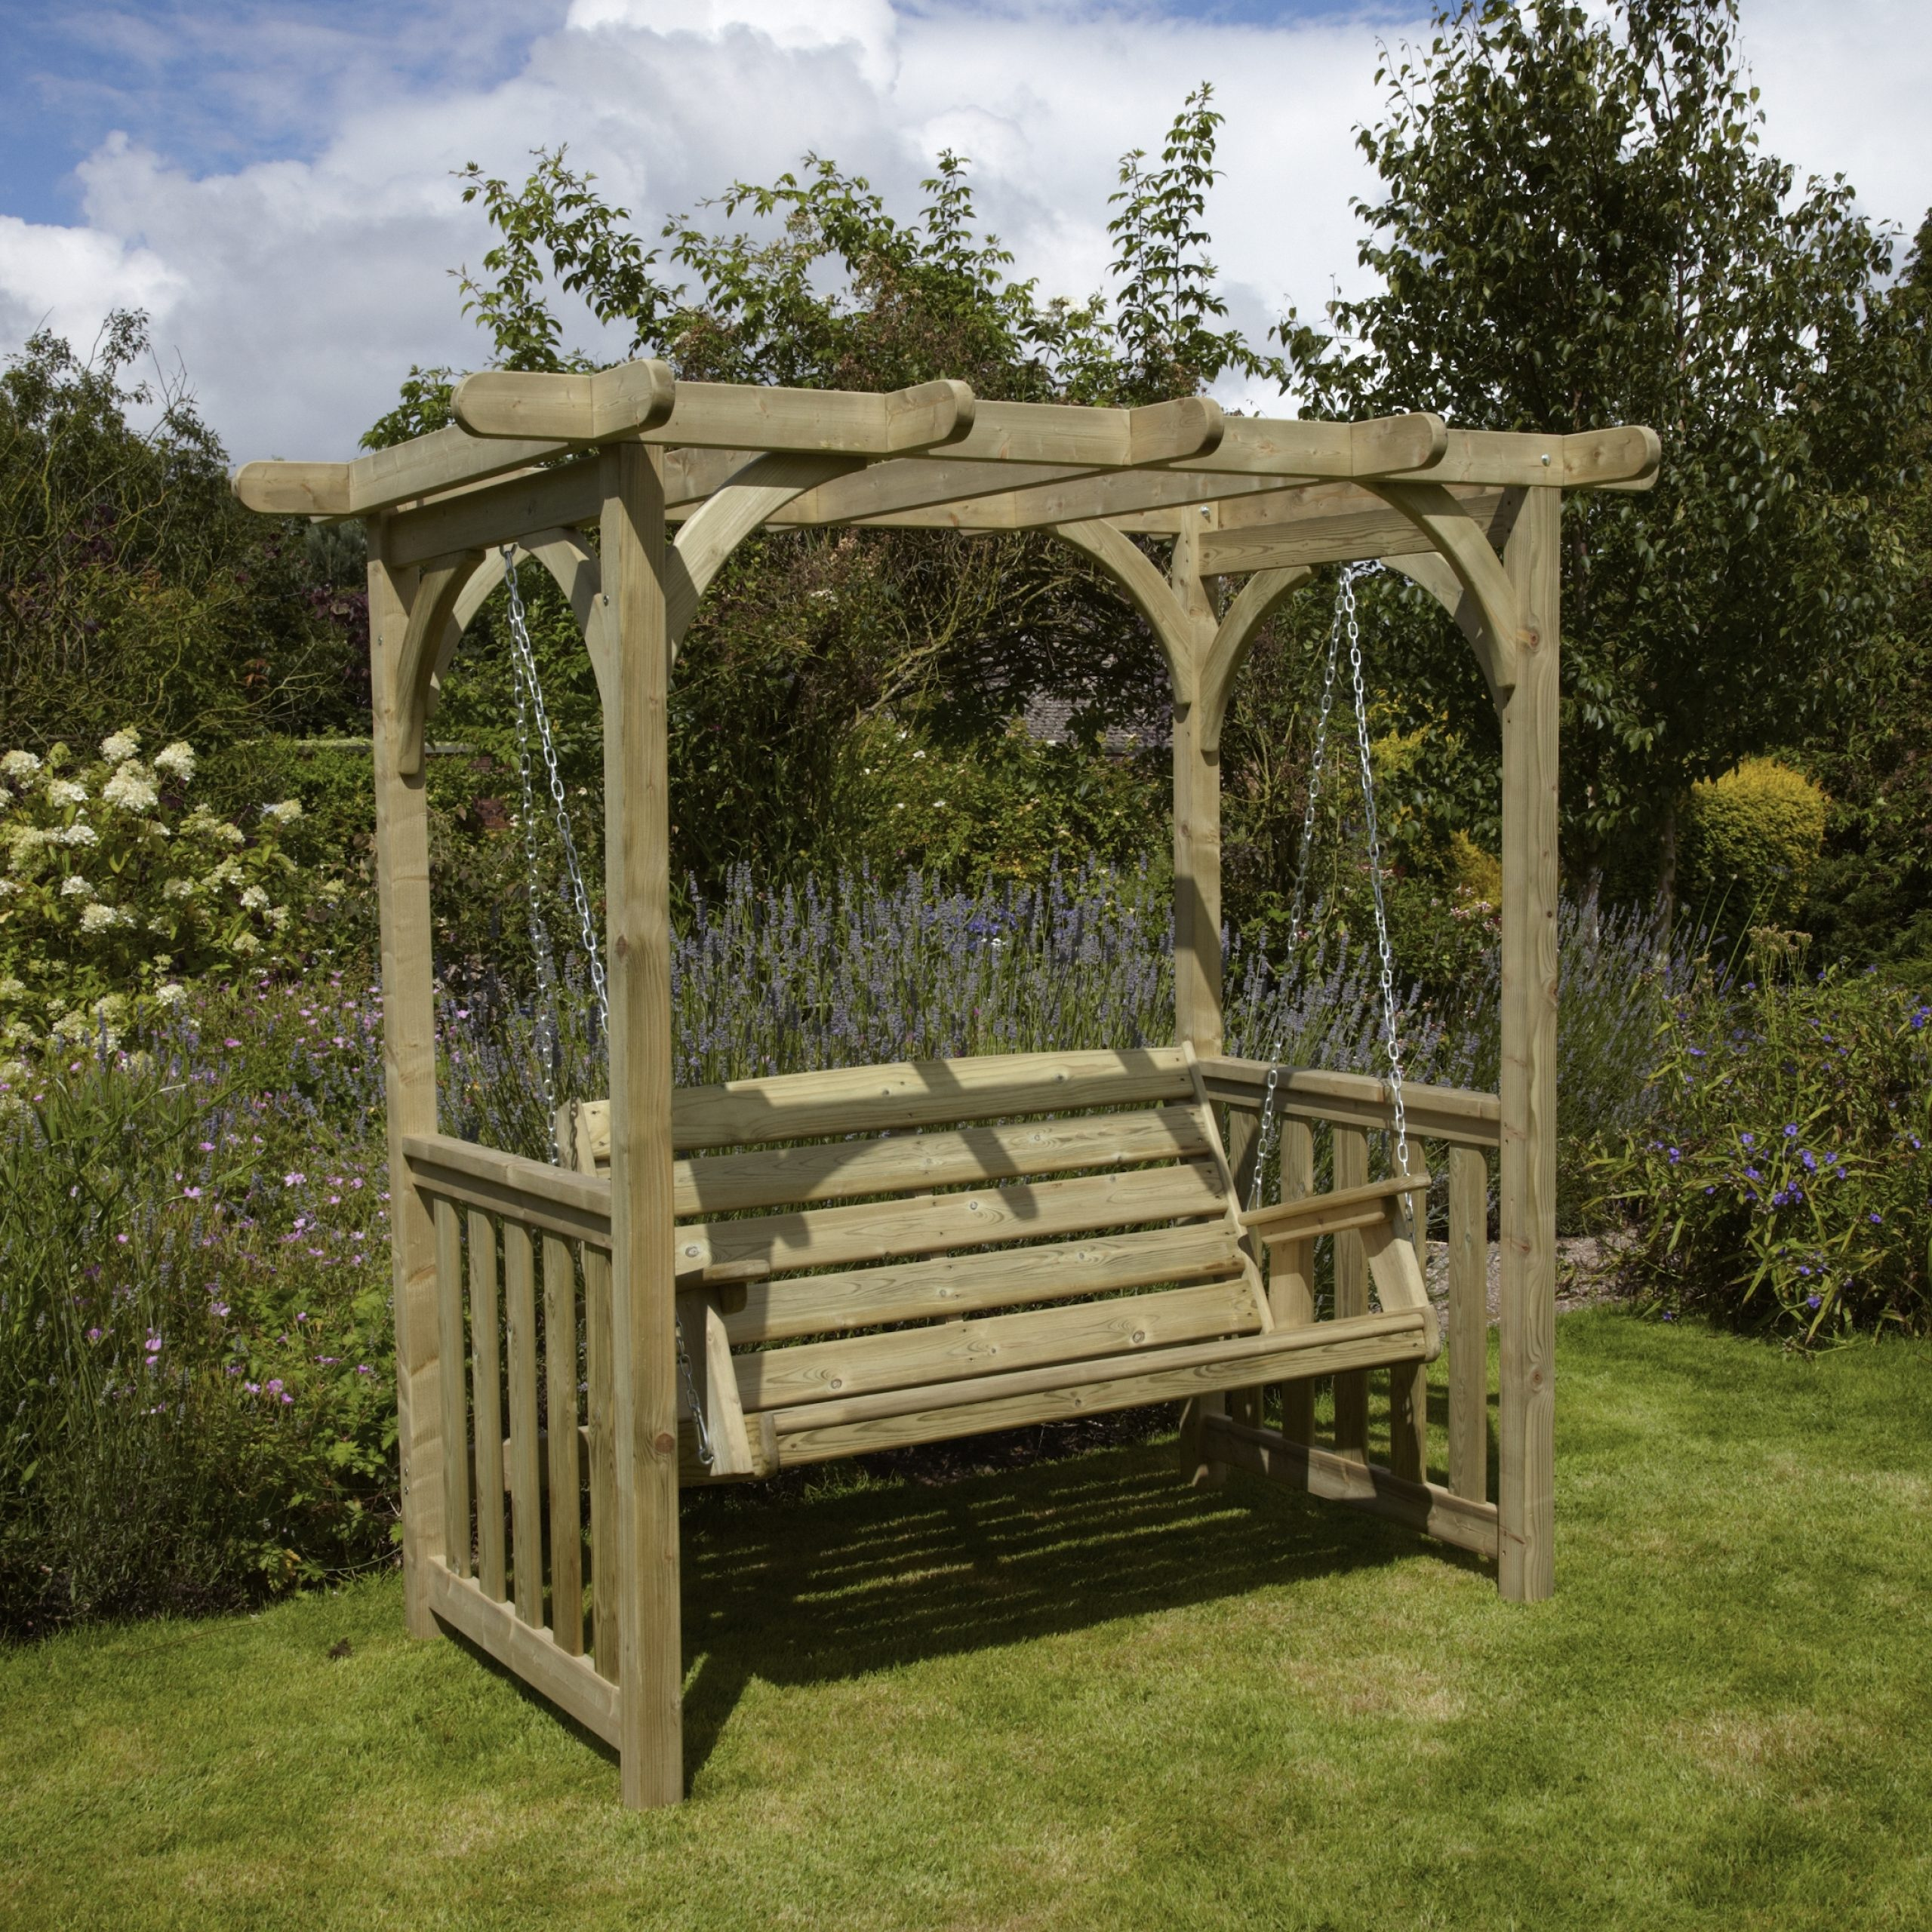 3 Seat Pergola Swings Pertaining To 2019 Woodshaw Appleton Swing Arbour (Gallery 10 of 25)